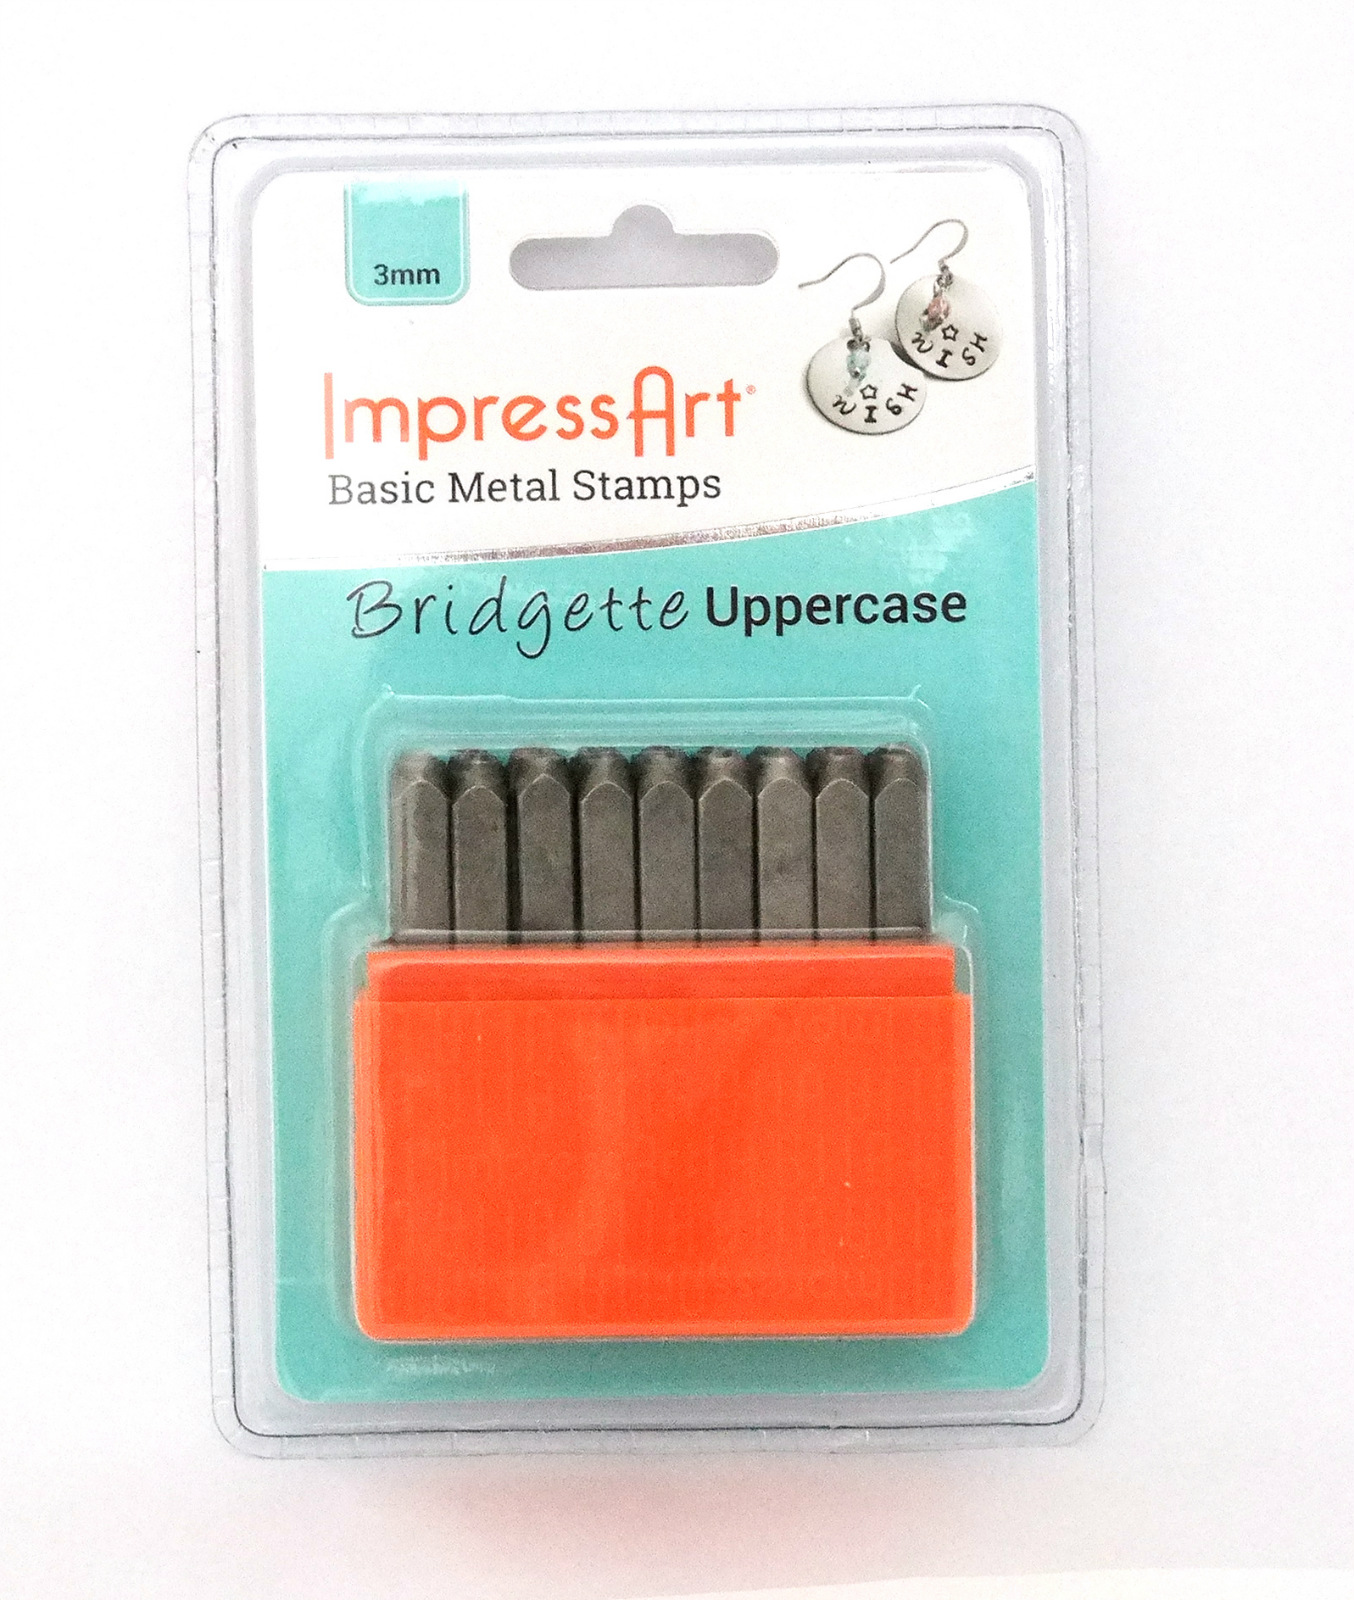 ImpressArt Basic Bridgette Numbers Metal Stamp Set by ImpressArt Metal Stamps